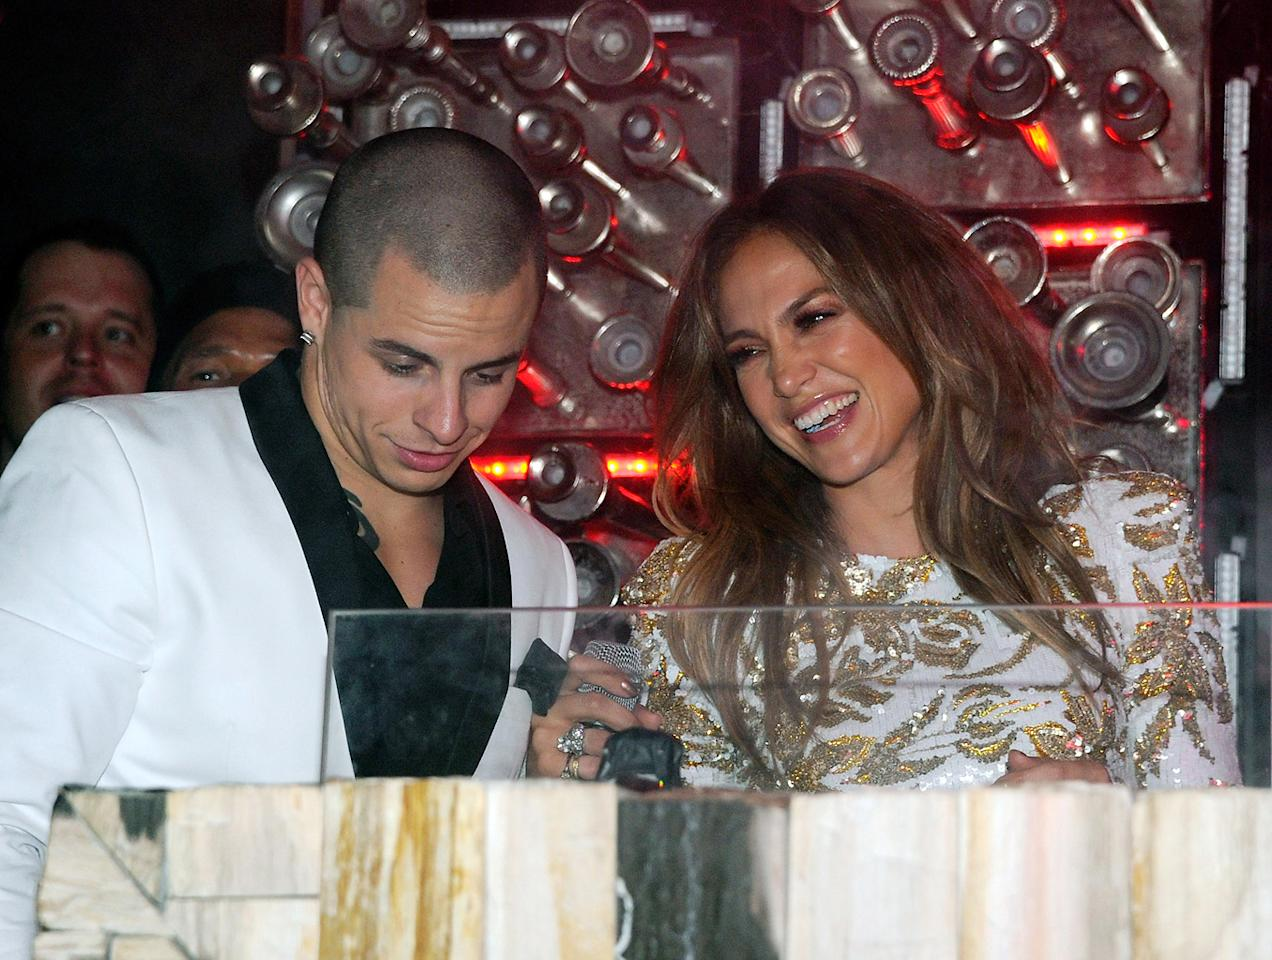 "<p class=""MsoPlainText"">Jennifer Lopez and Casper Smart ""are trying for a baby,"" reveals Star, which notes that she's already been ""telling her family and closest friends, 'I'm having a baby.'"" The magazine adds, Lopez ""would love nothing more than to become pregnant by Casper."" For when Lopez may announce her baby news, see what a J. Lo insider leaks to <a target=""_blank"" href=""http://www.gossipcop.com/jennifer-lopez-baby-casper-smart-pregnant-june-2012/"">Gossip Cop</a>.</p>"